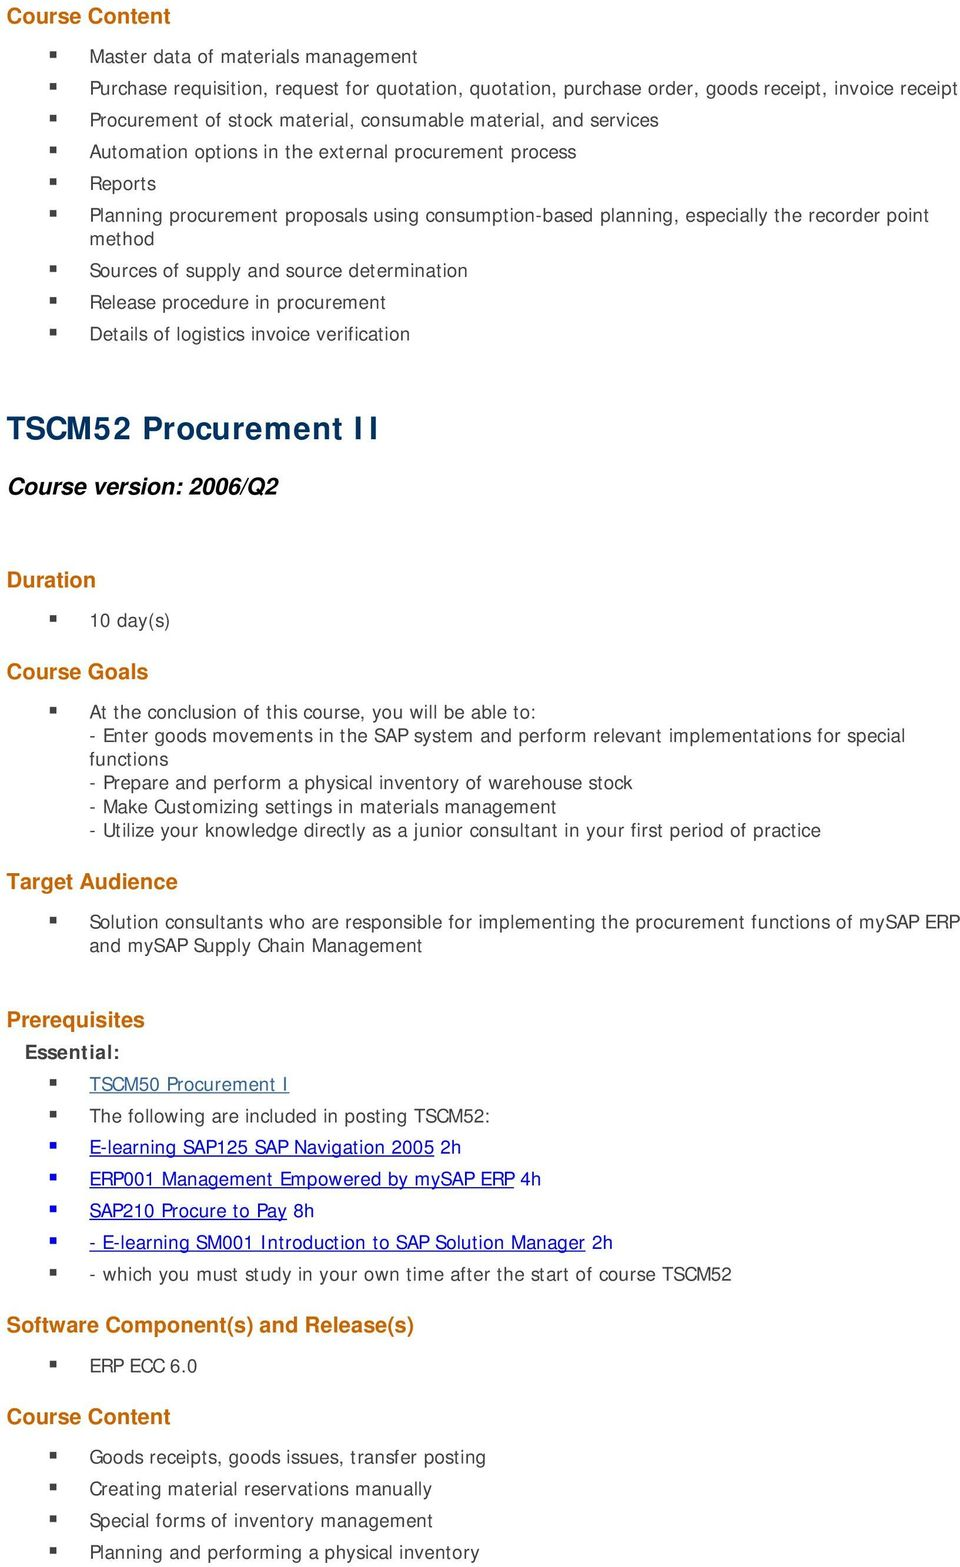 source determination Release procedure in procurement Details of logistics invoice verification TSCM52 Procurement II Course version: 2006/Q2 Duration 10 day(s) At the conclusion of this course, you